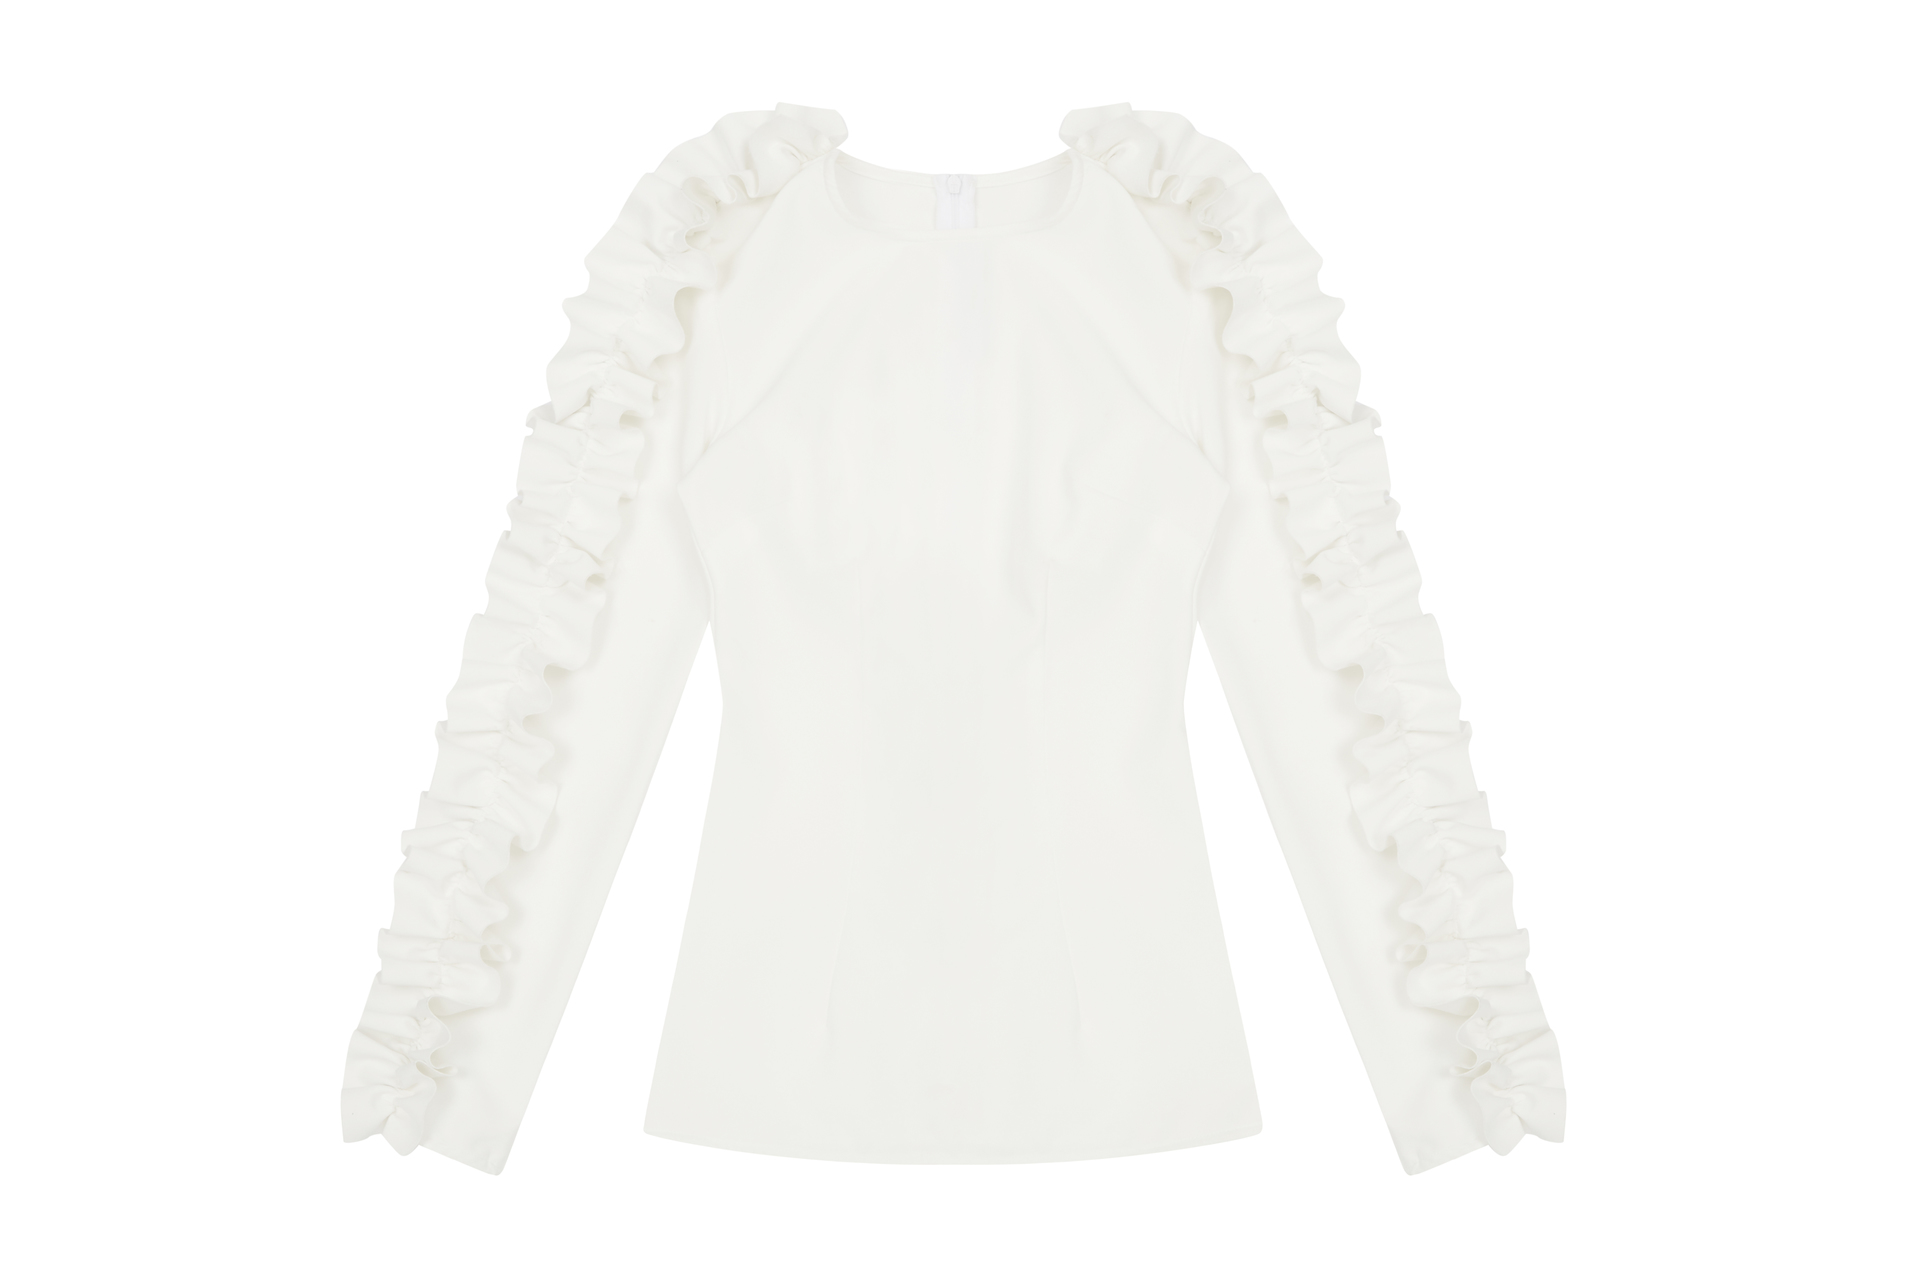 72dpi-2391228520-6.-BY-JOHNNY,-Ruffle-Down-Sleeve-Top-White,-280,-www.byjohnny.com.au